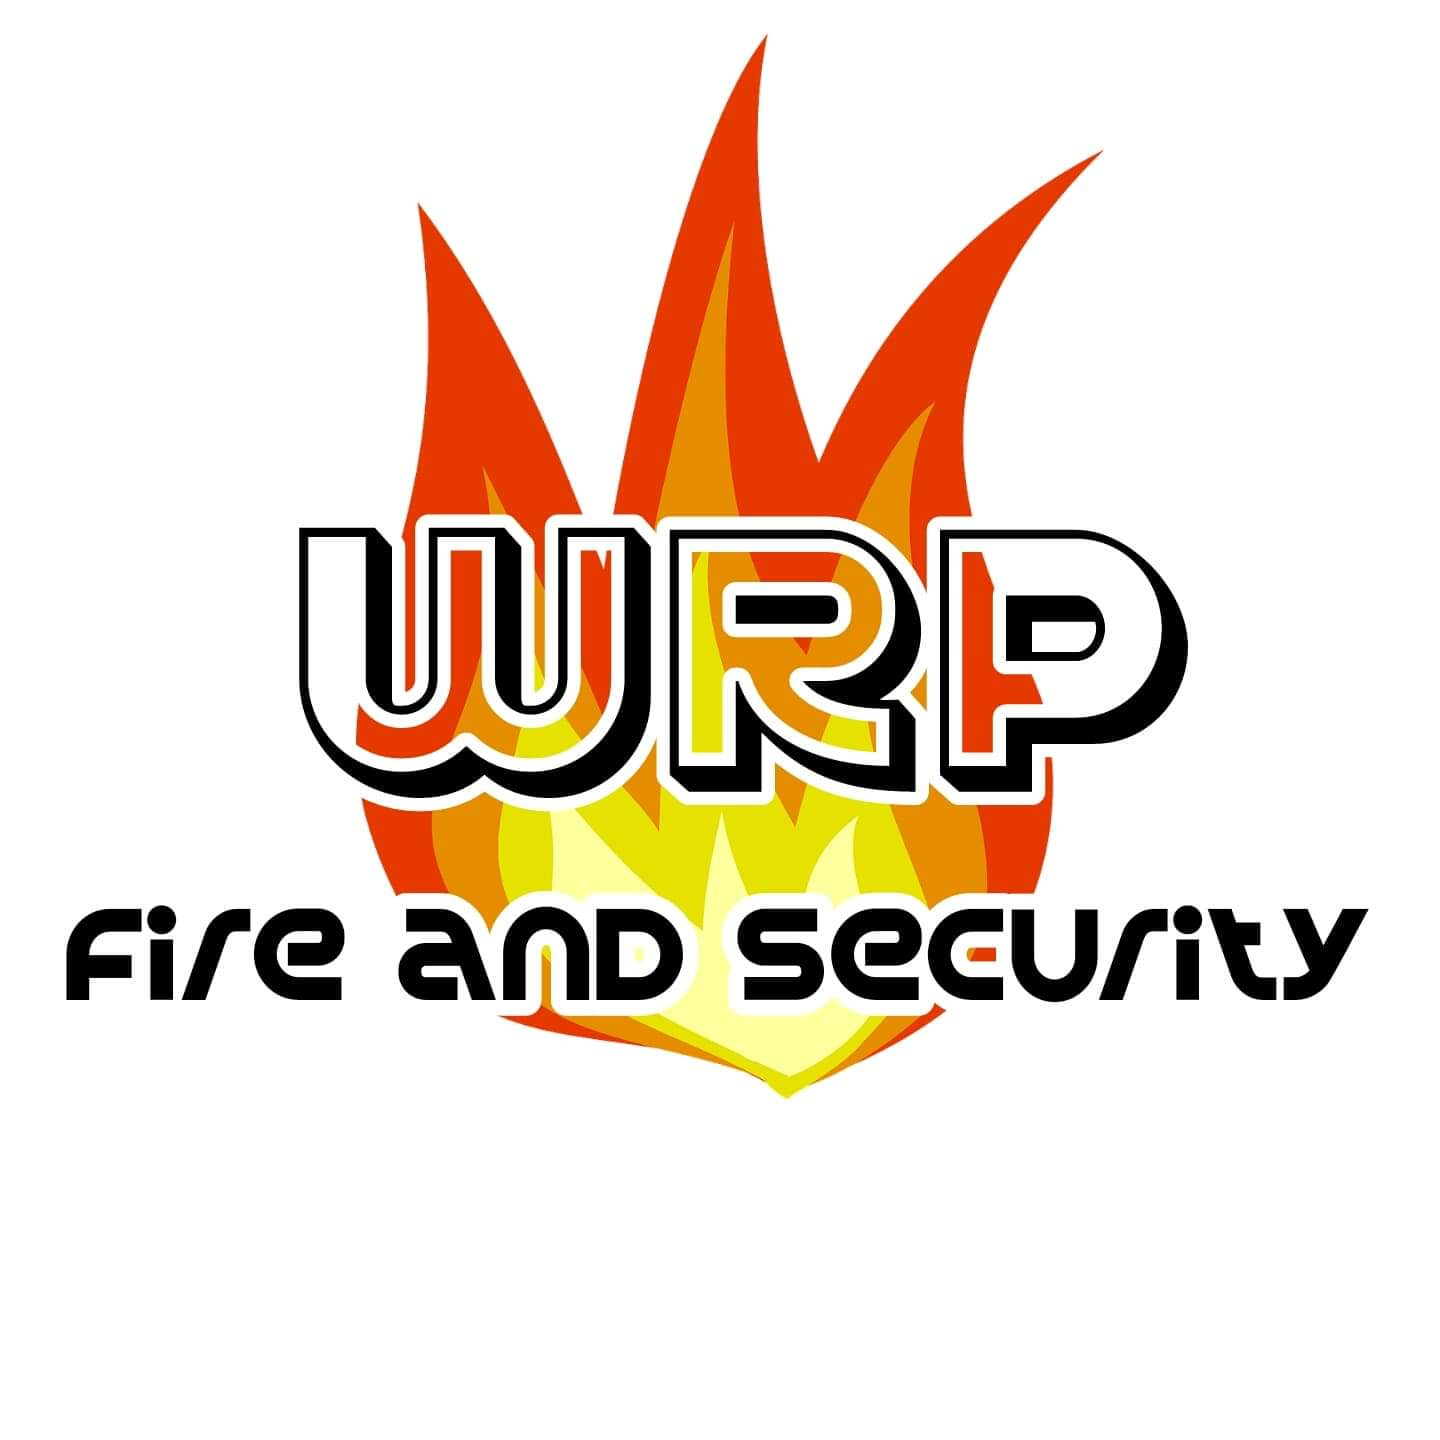 WRP Fire and Security ltd